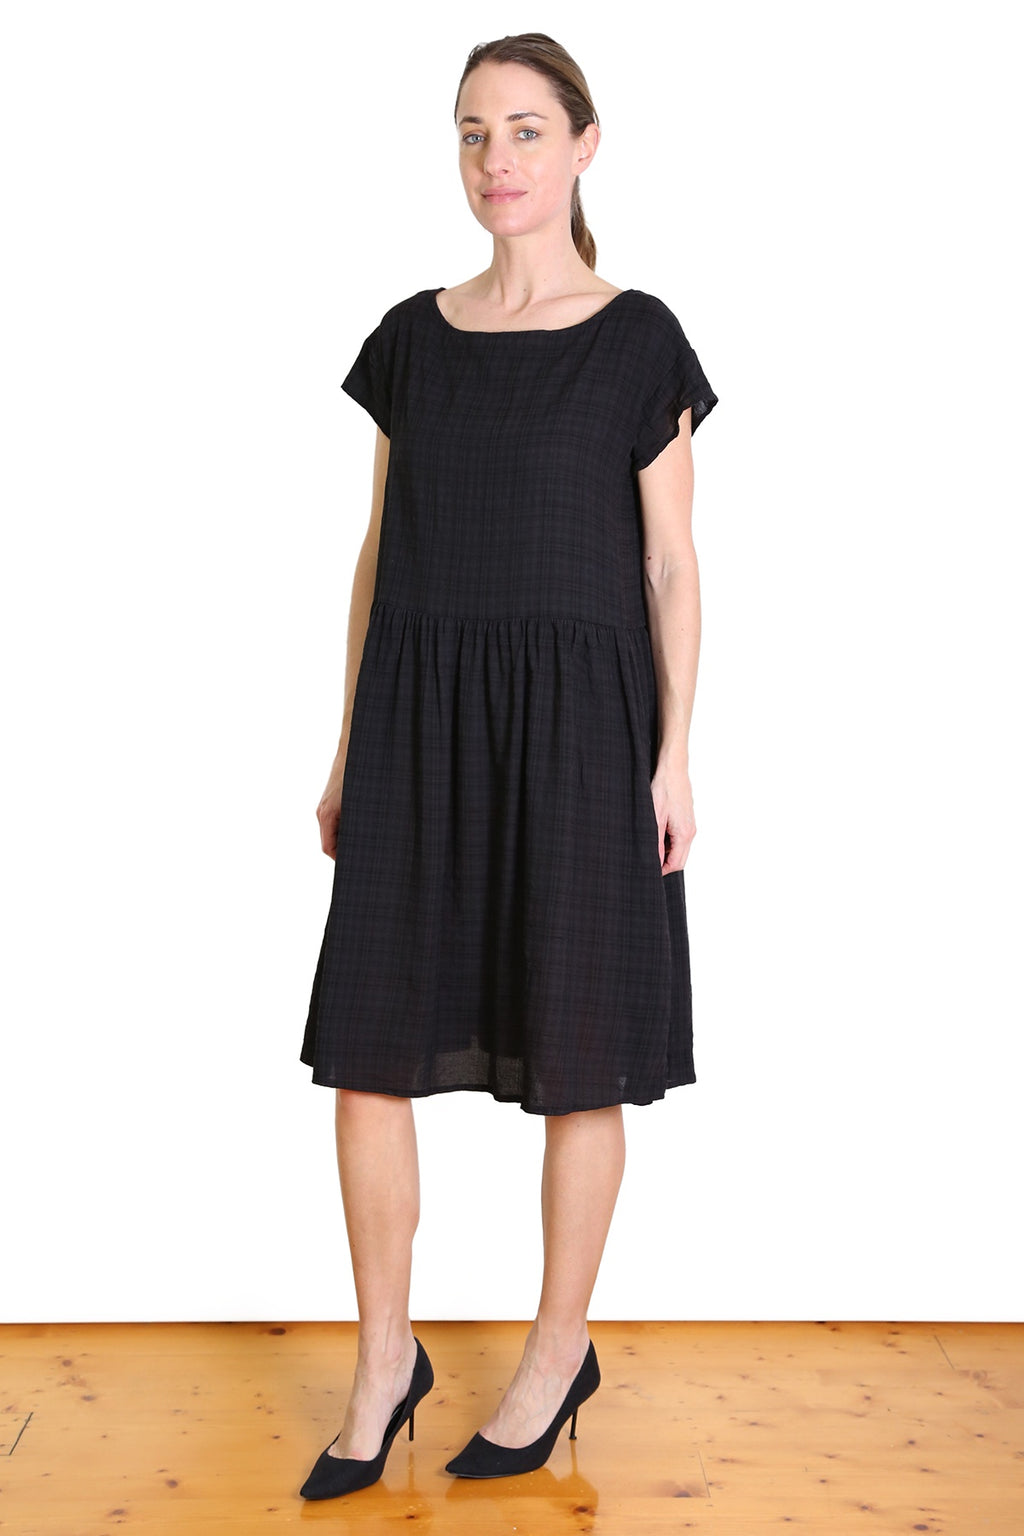 THELMA Seer Dropwaist Dress